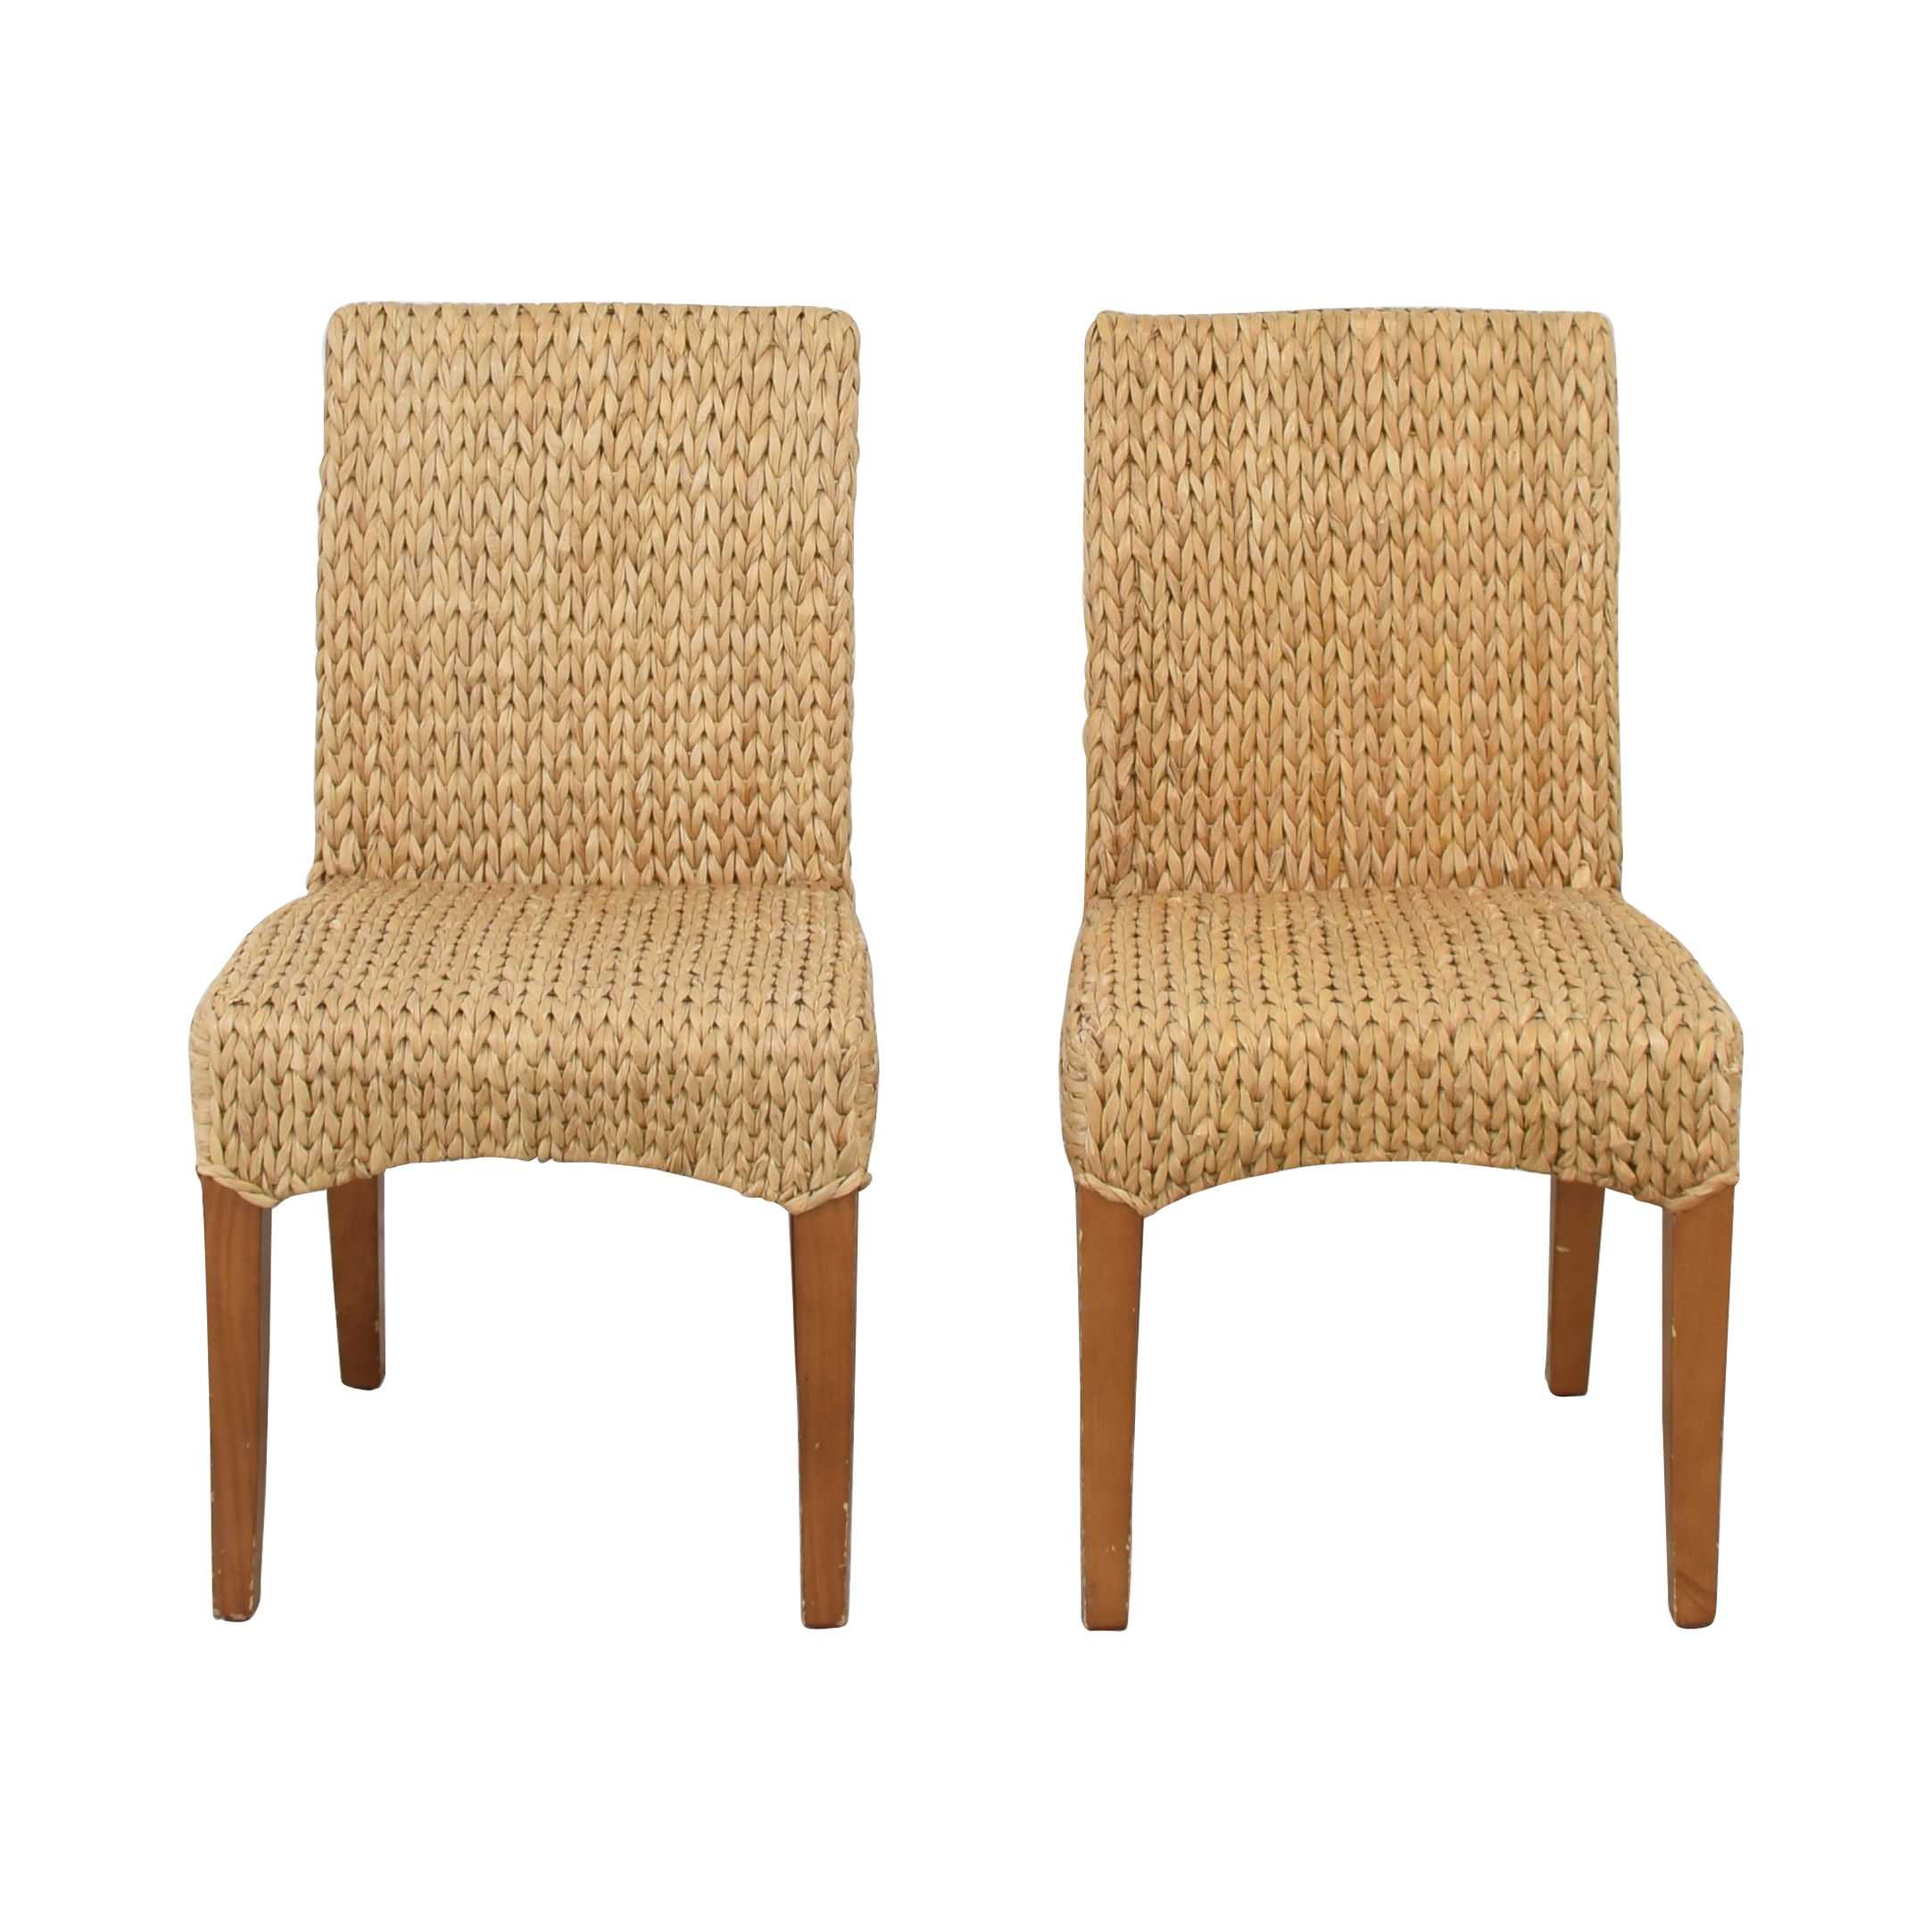 buy Pottery Barn Seagrass Dining Side Chairs Pottery Barn Chairs